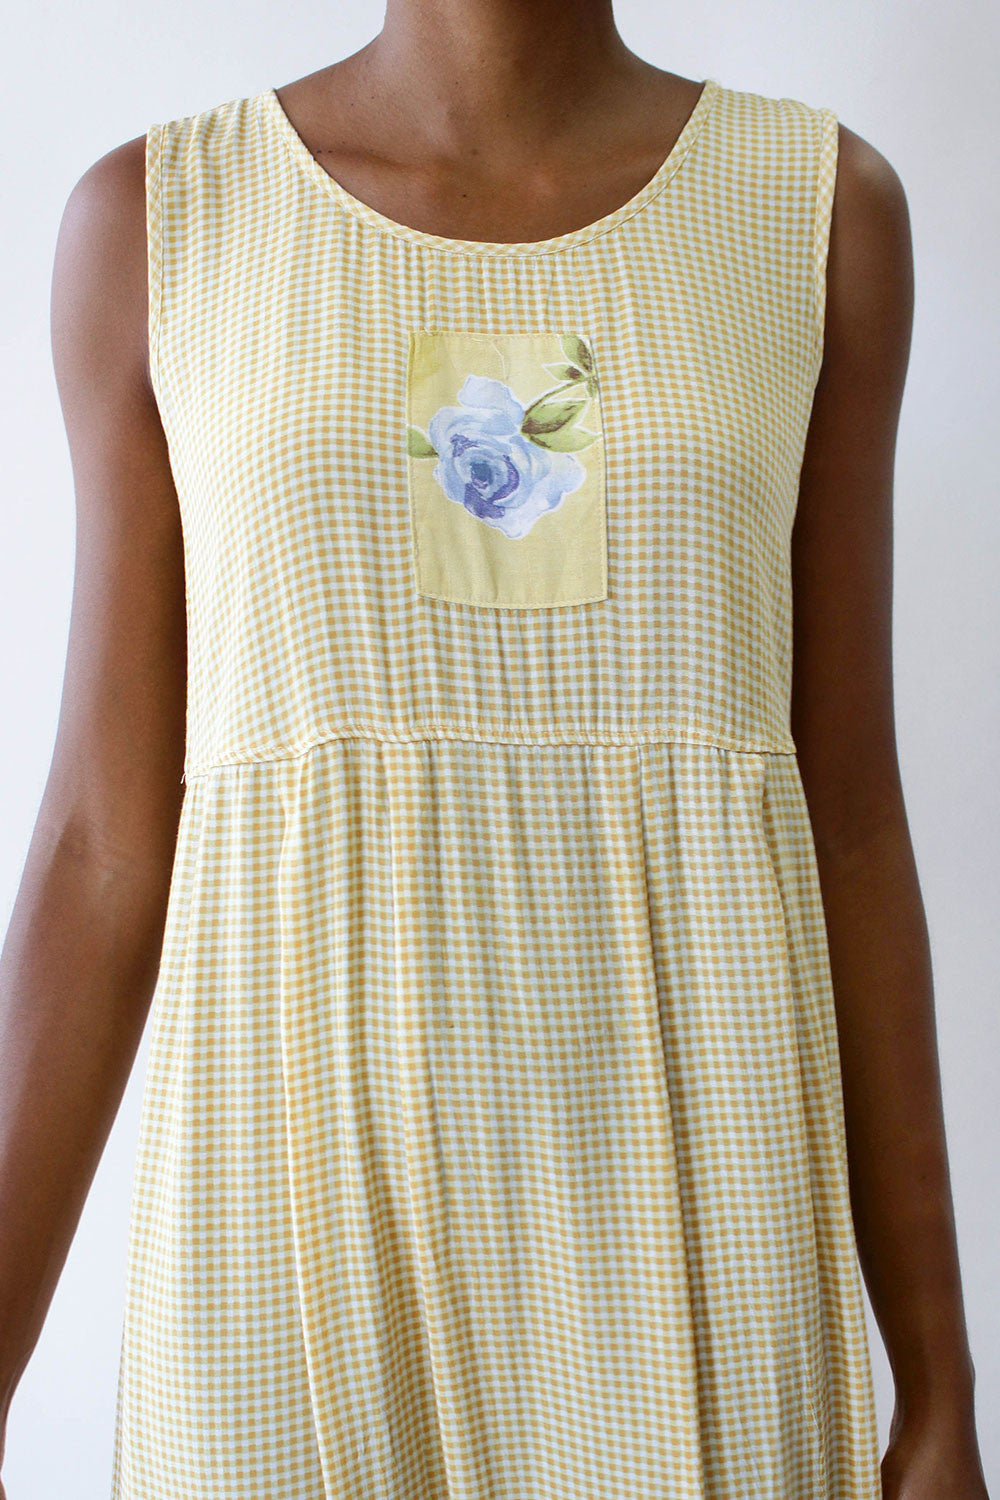 Butter Gingham Rose Dress S/M